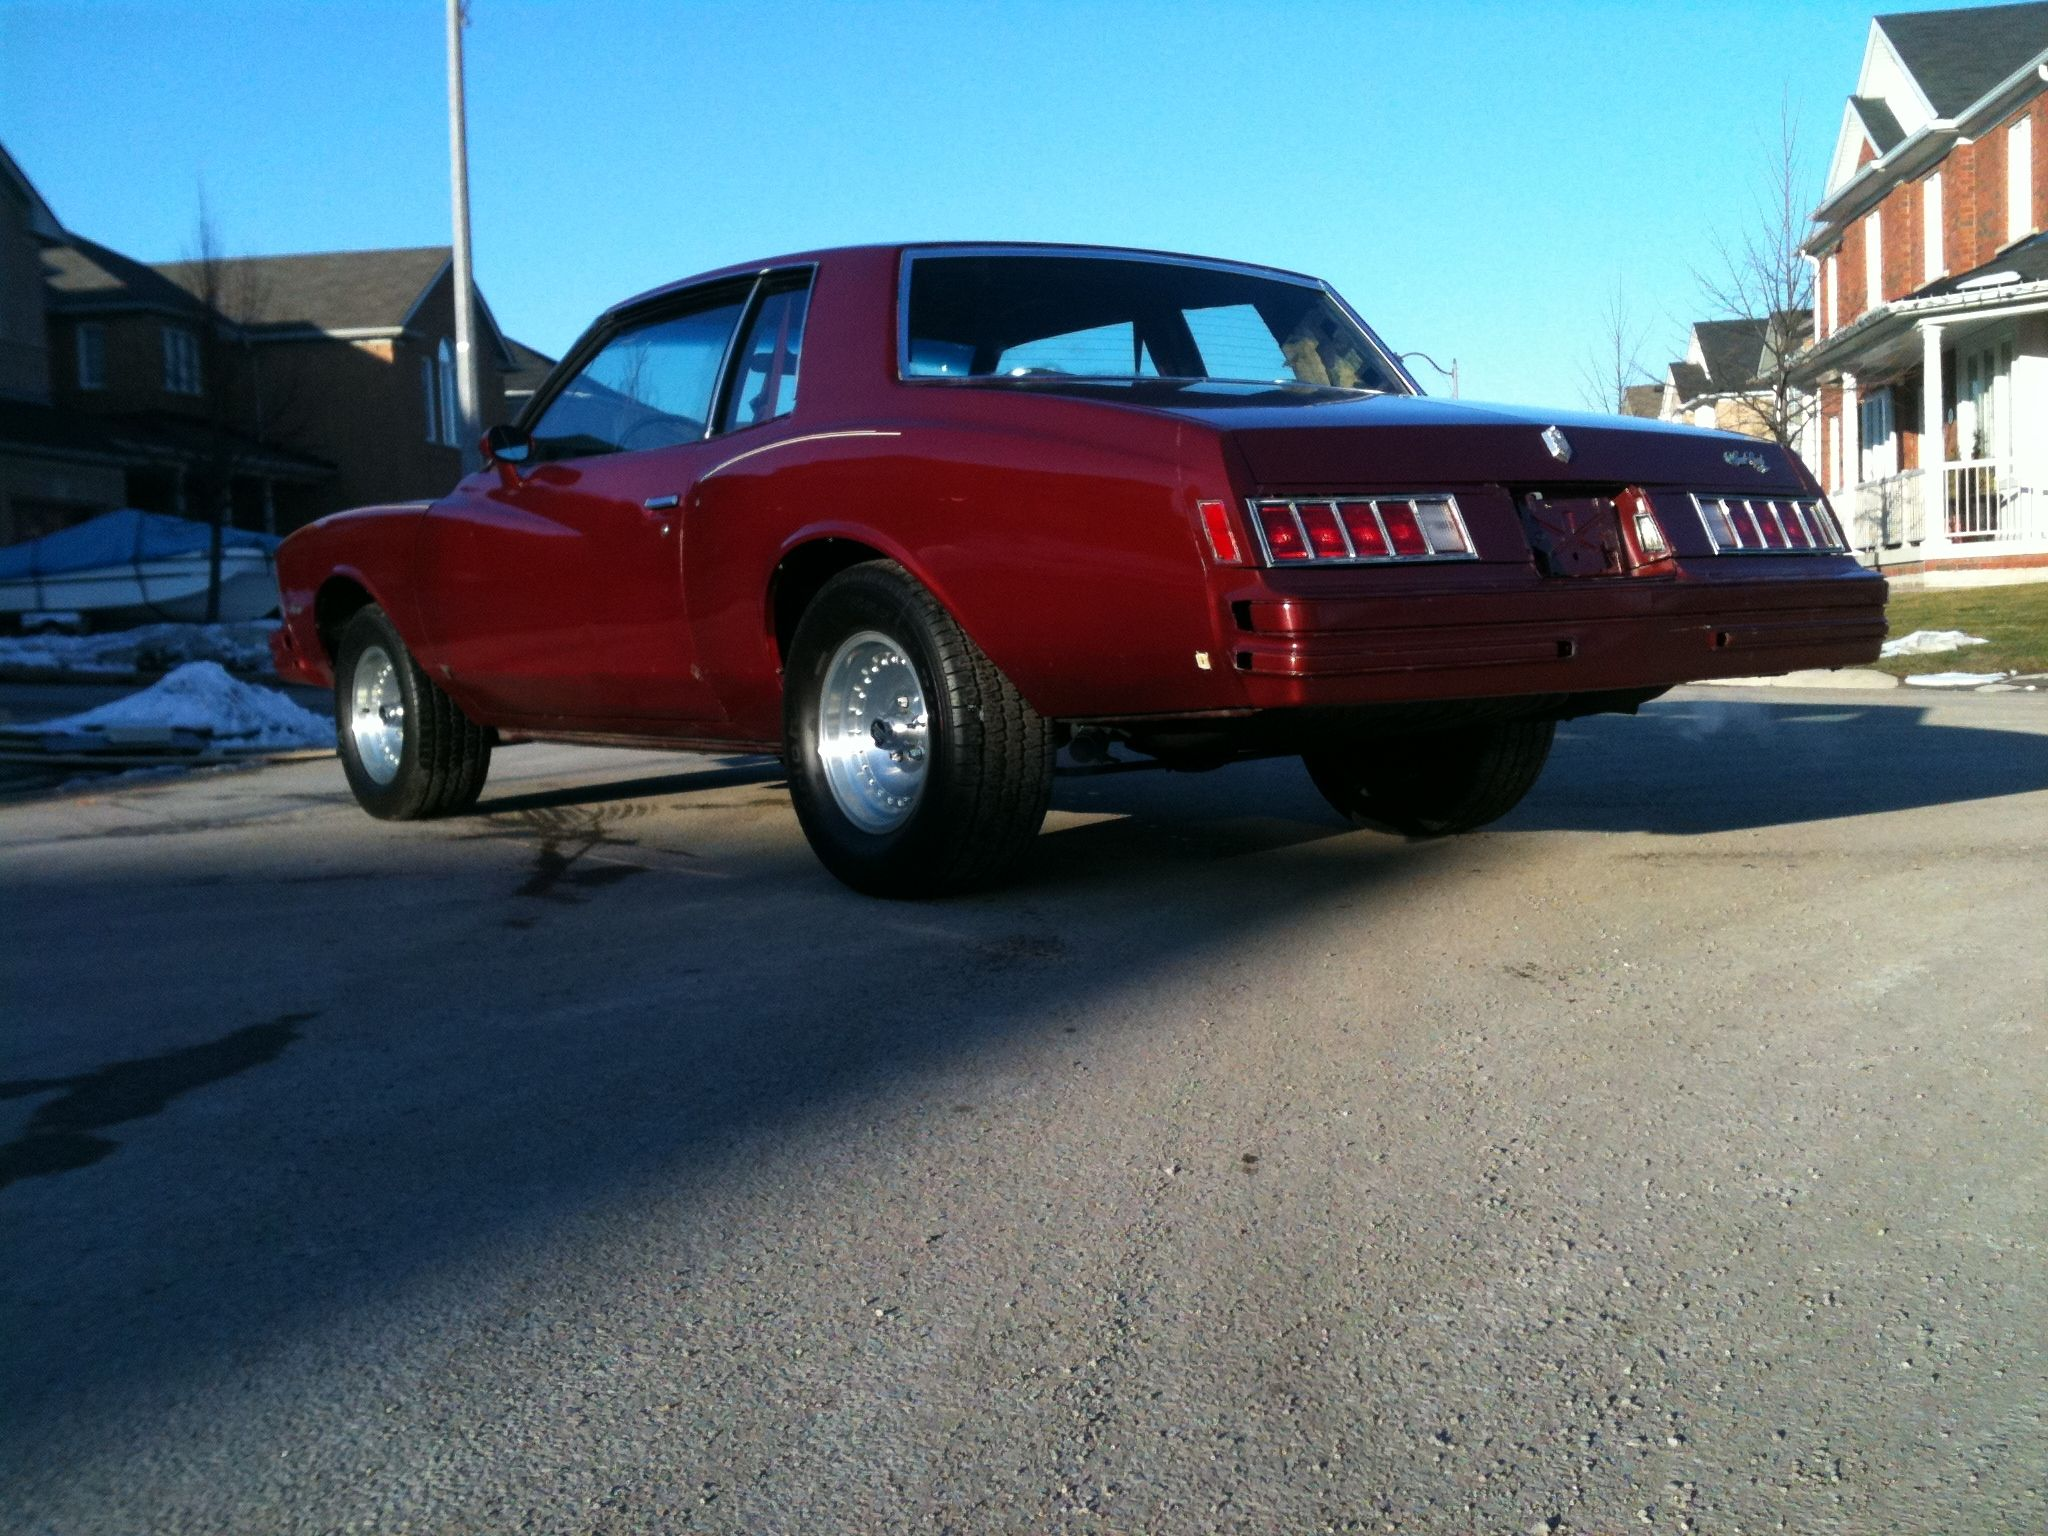 78-montee\'s 1978 Chevrolet Monte Carlo Page 2 in Toronto, ON | The ...